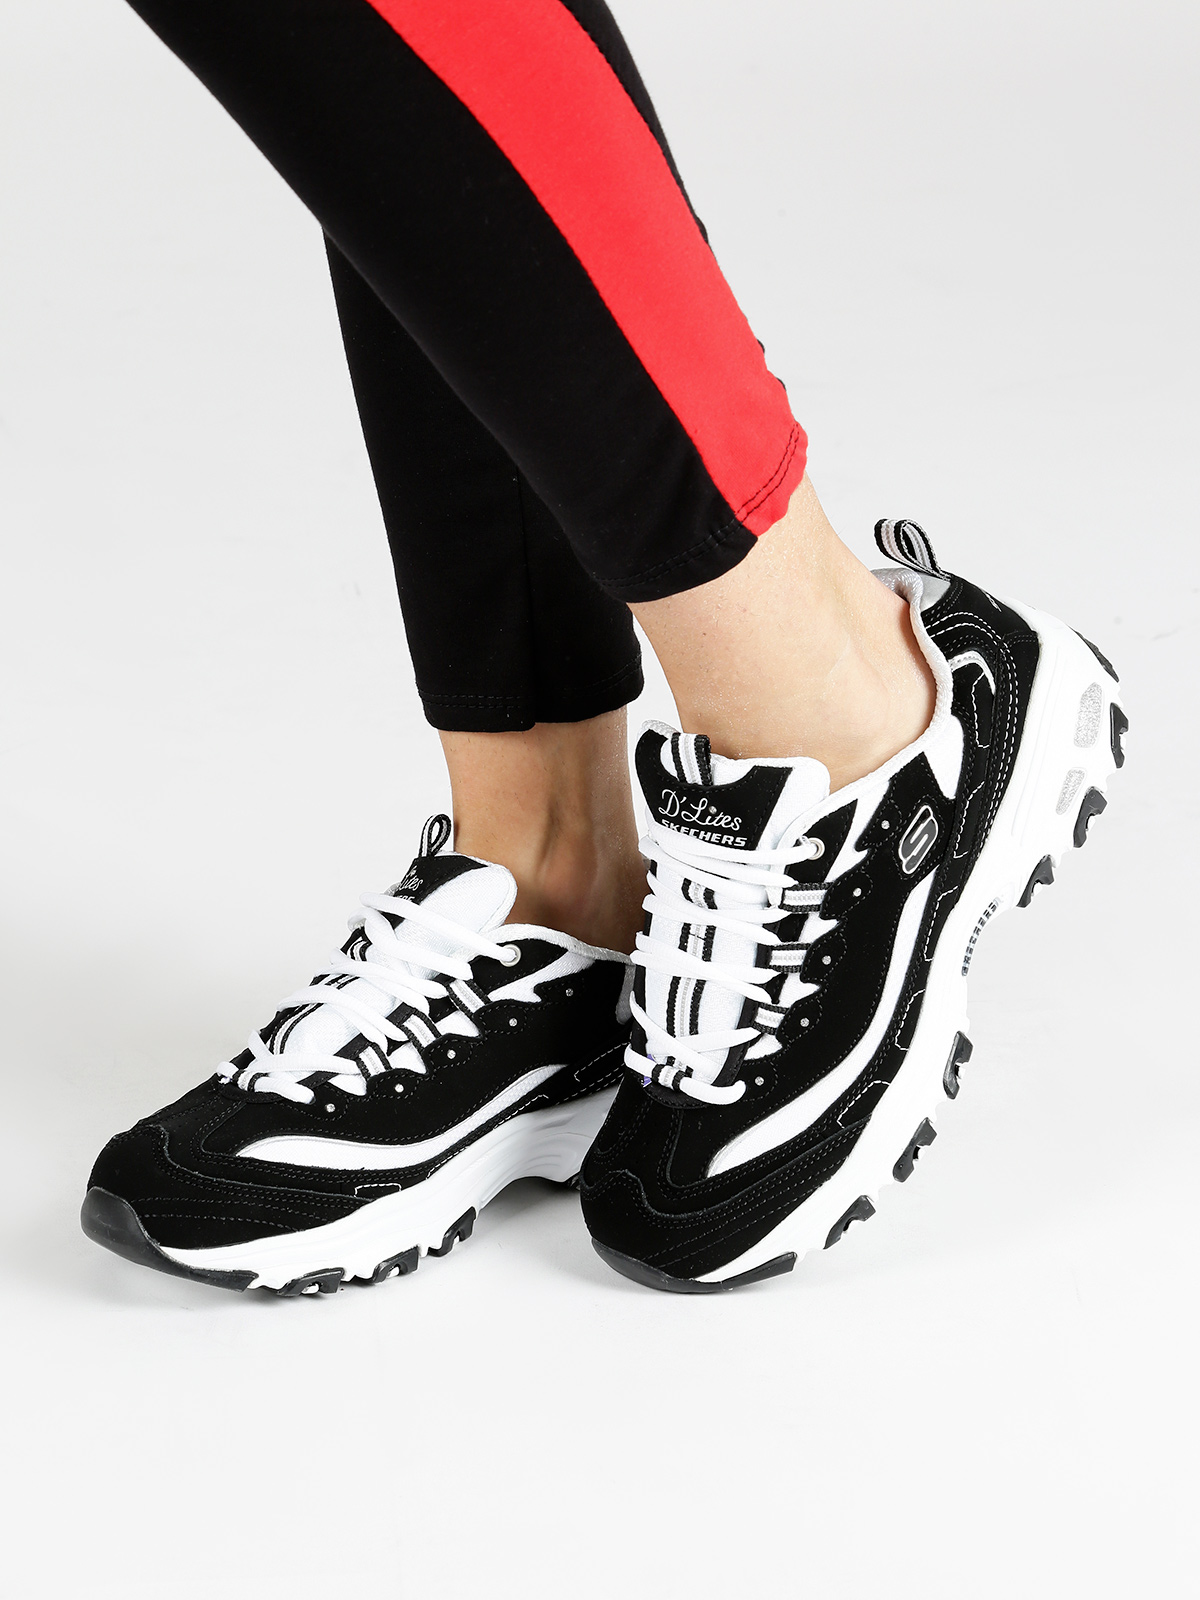 DLITE-sport Shoes Black And White